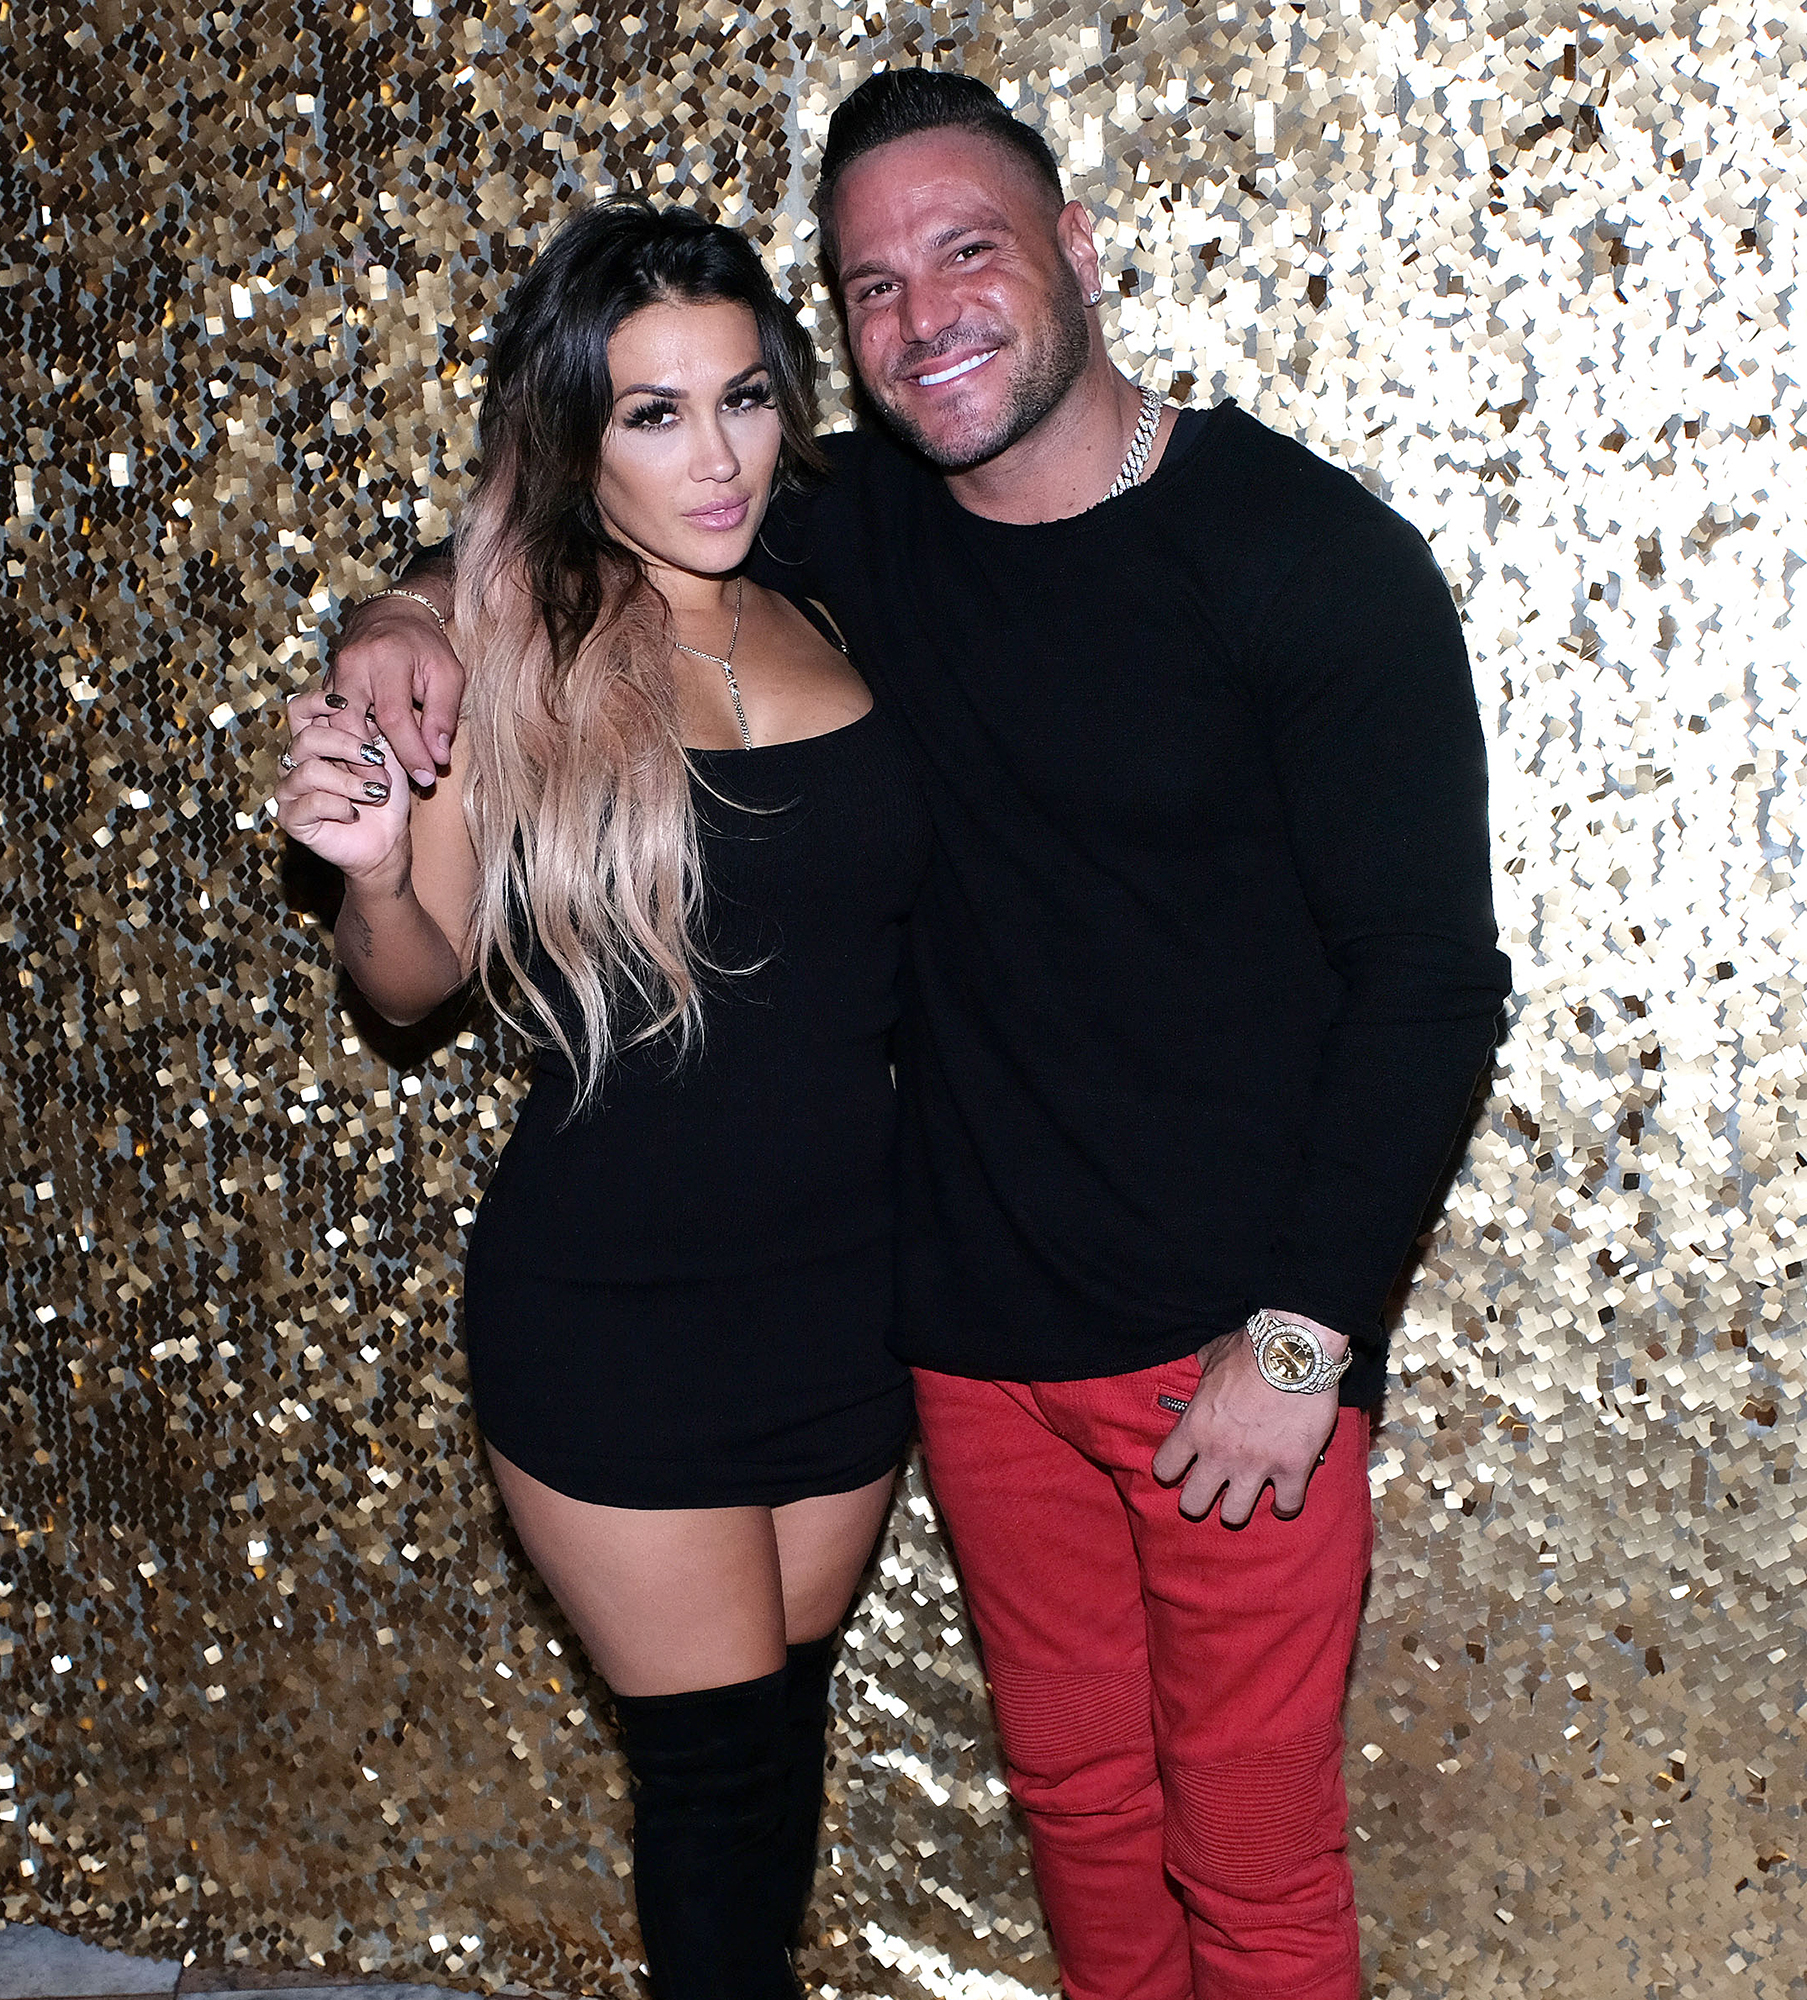 Jen Harley Posts About 'Peace' on IG Amid Ronnie Ortiz-Magro Split